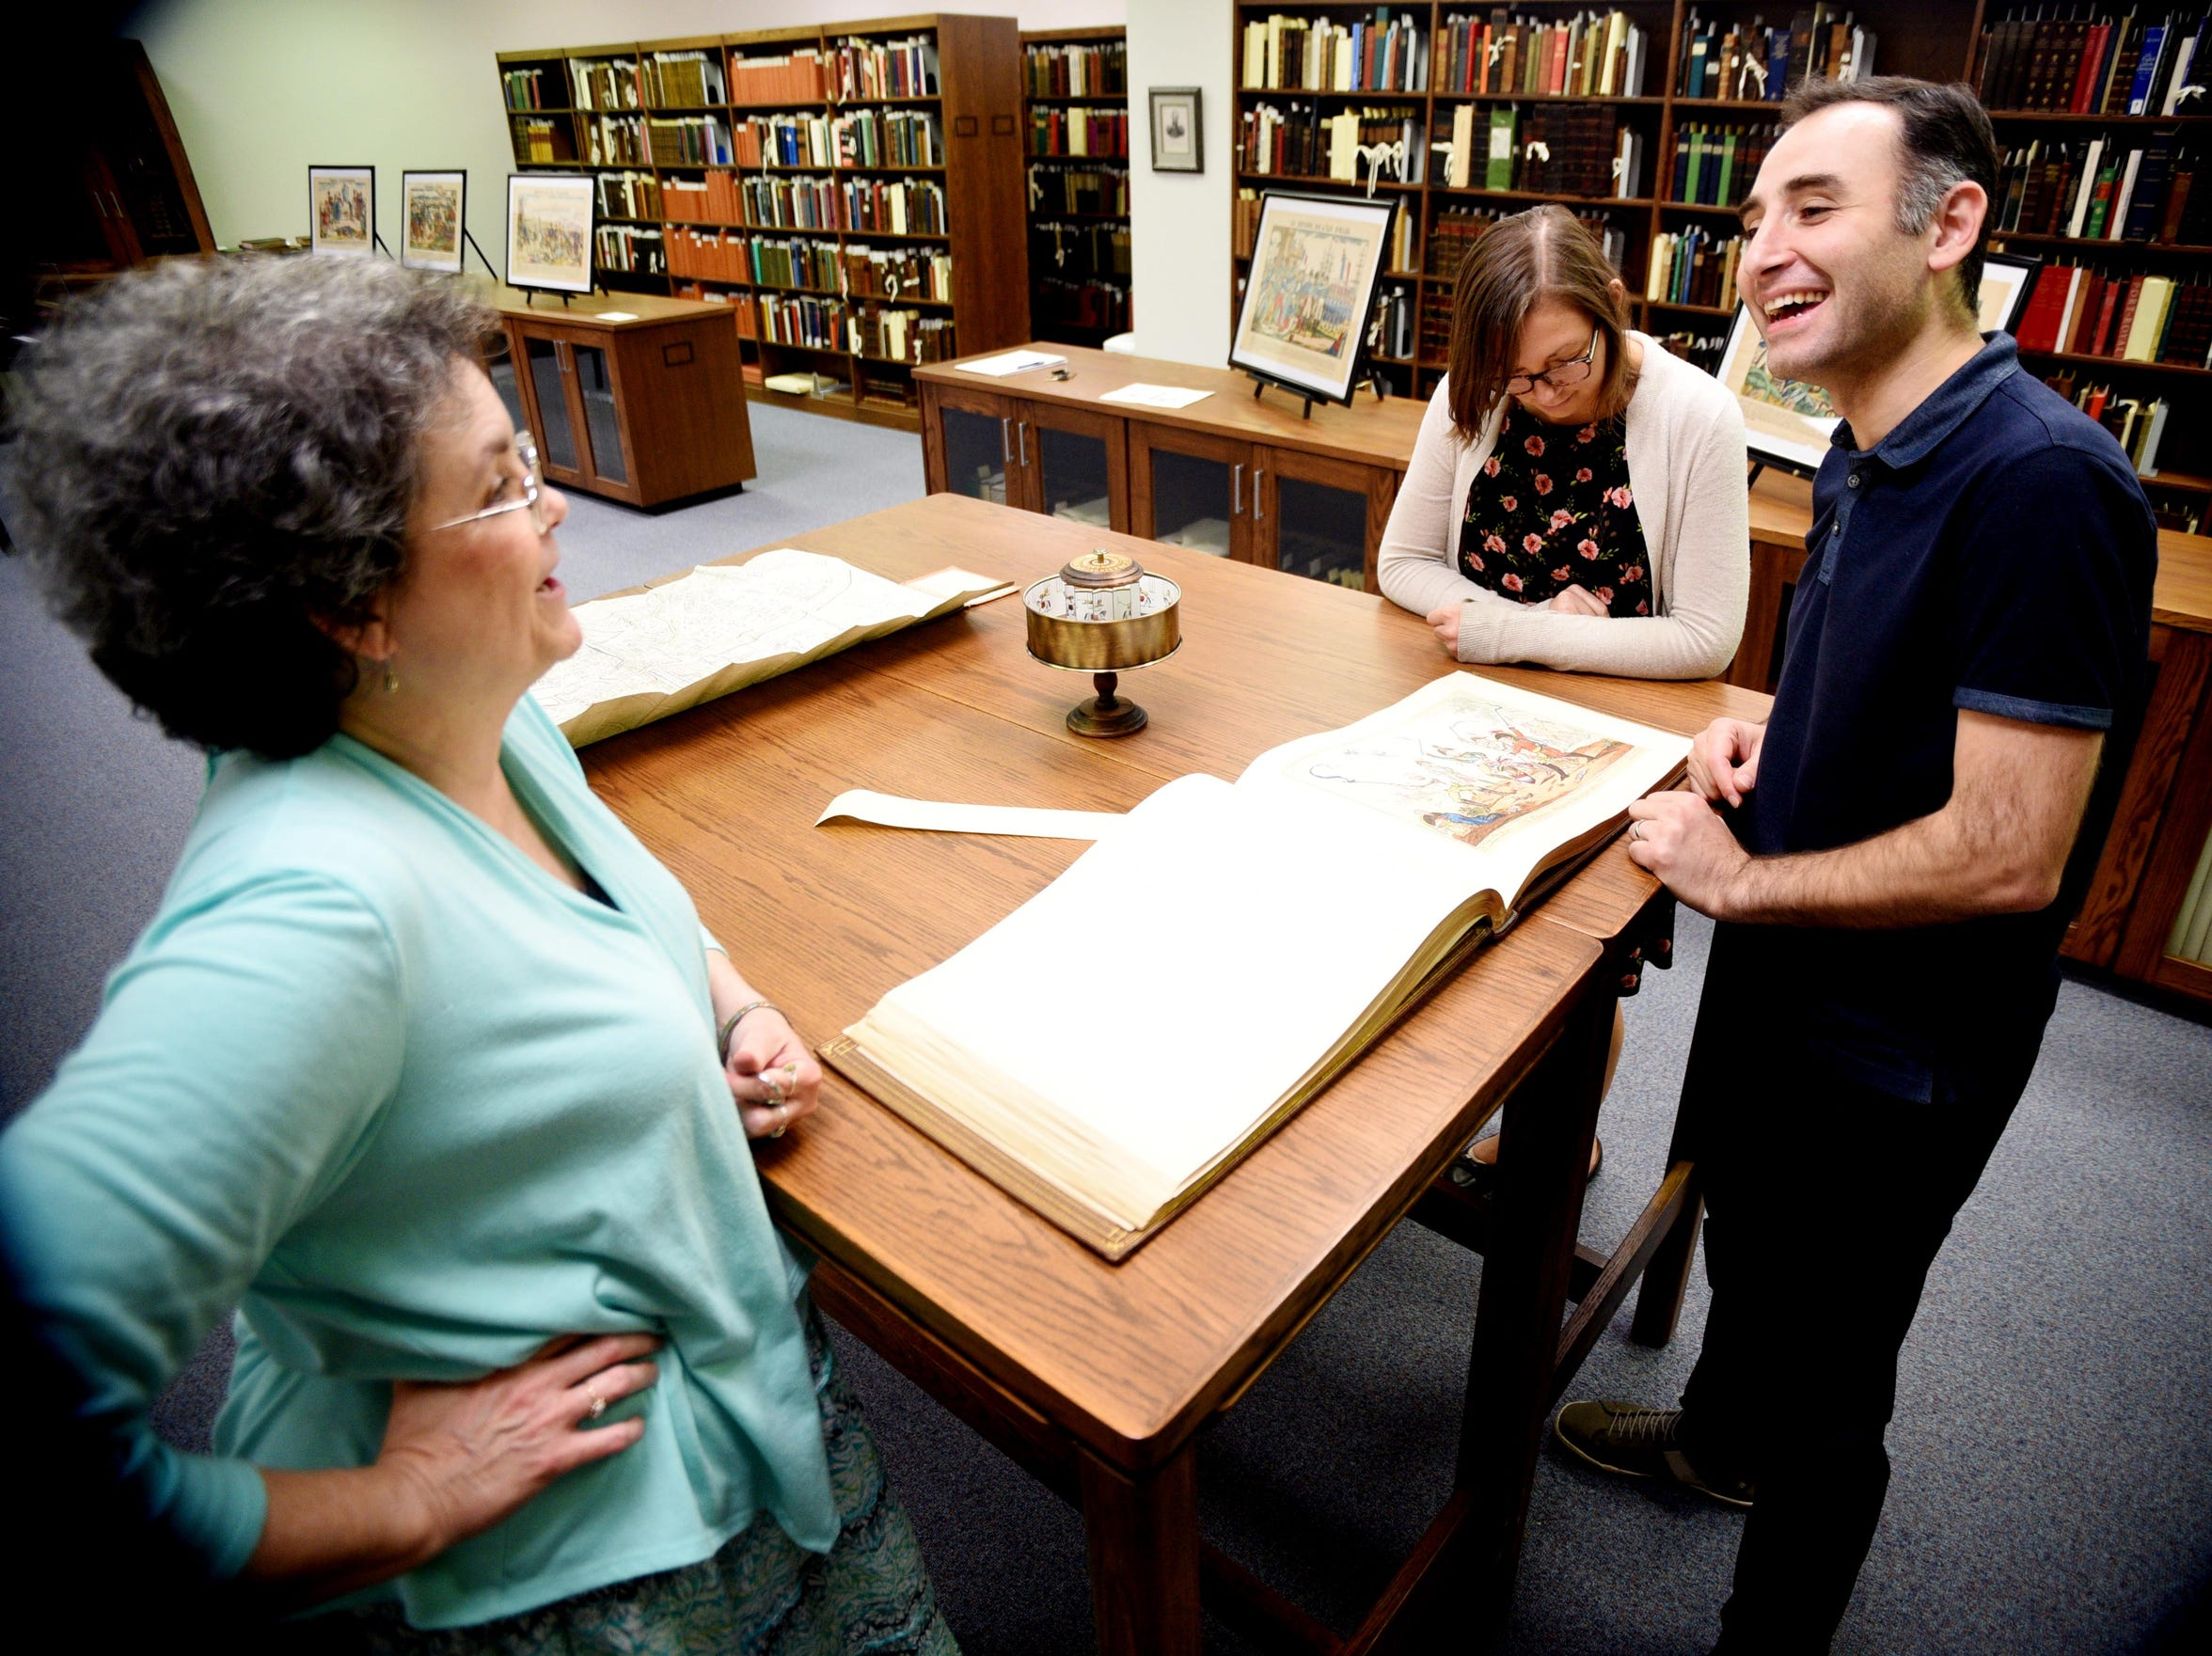 The rare book collection at Noel Memorial Library's staff includes Director Martha Lawler (left), Curator Alexander Mikaberidze (right), and Cataloguers Andrea Schuba.